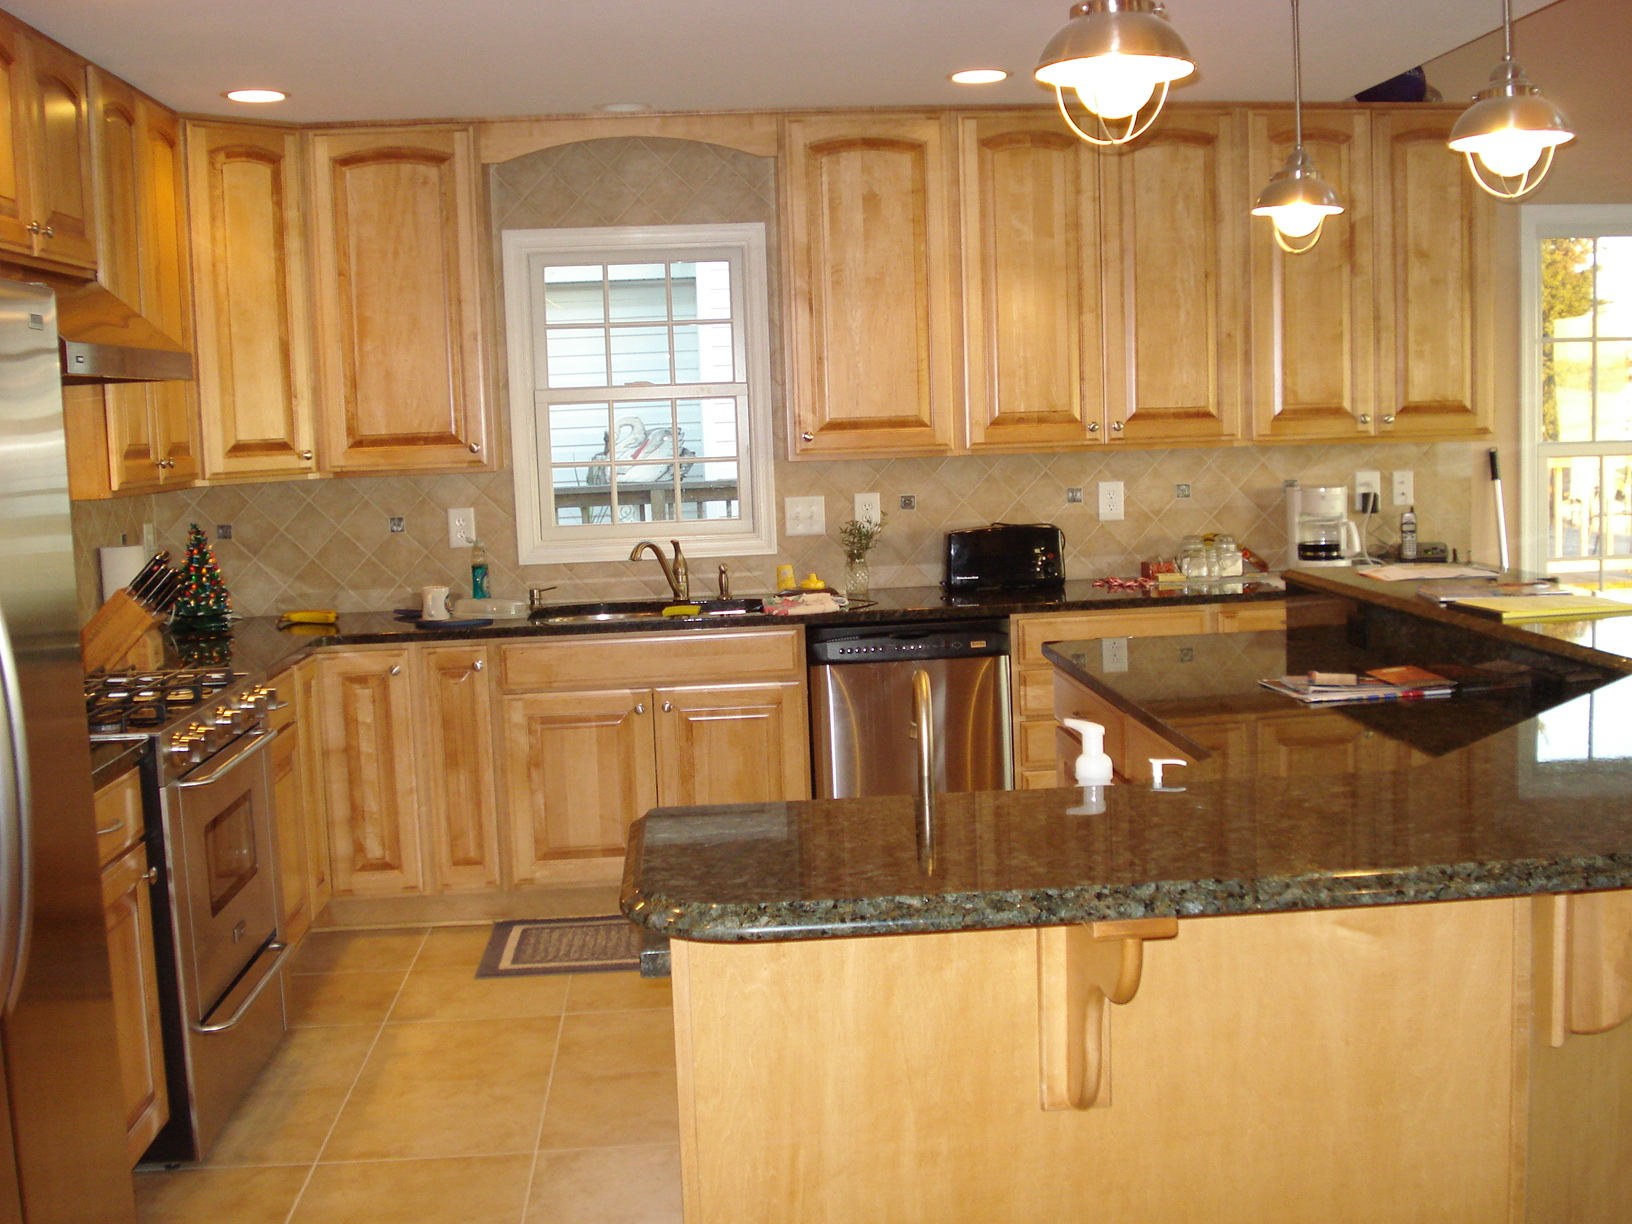 Lifetime design build inc completed projects for Redesign kitchen layout